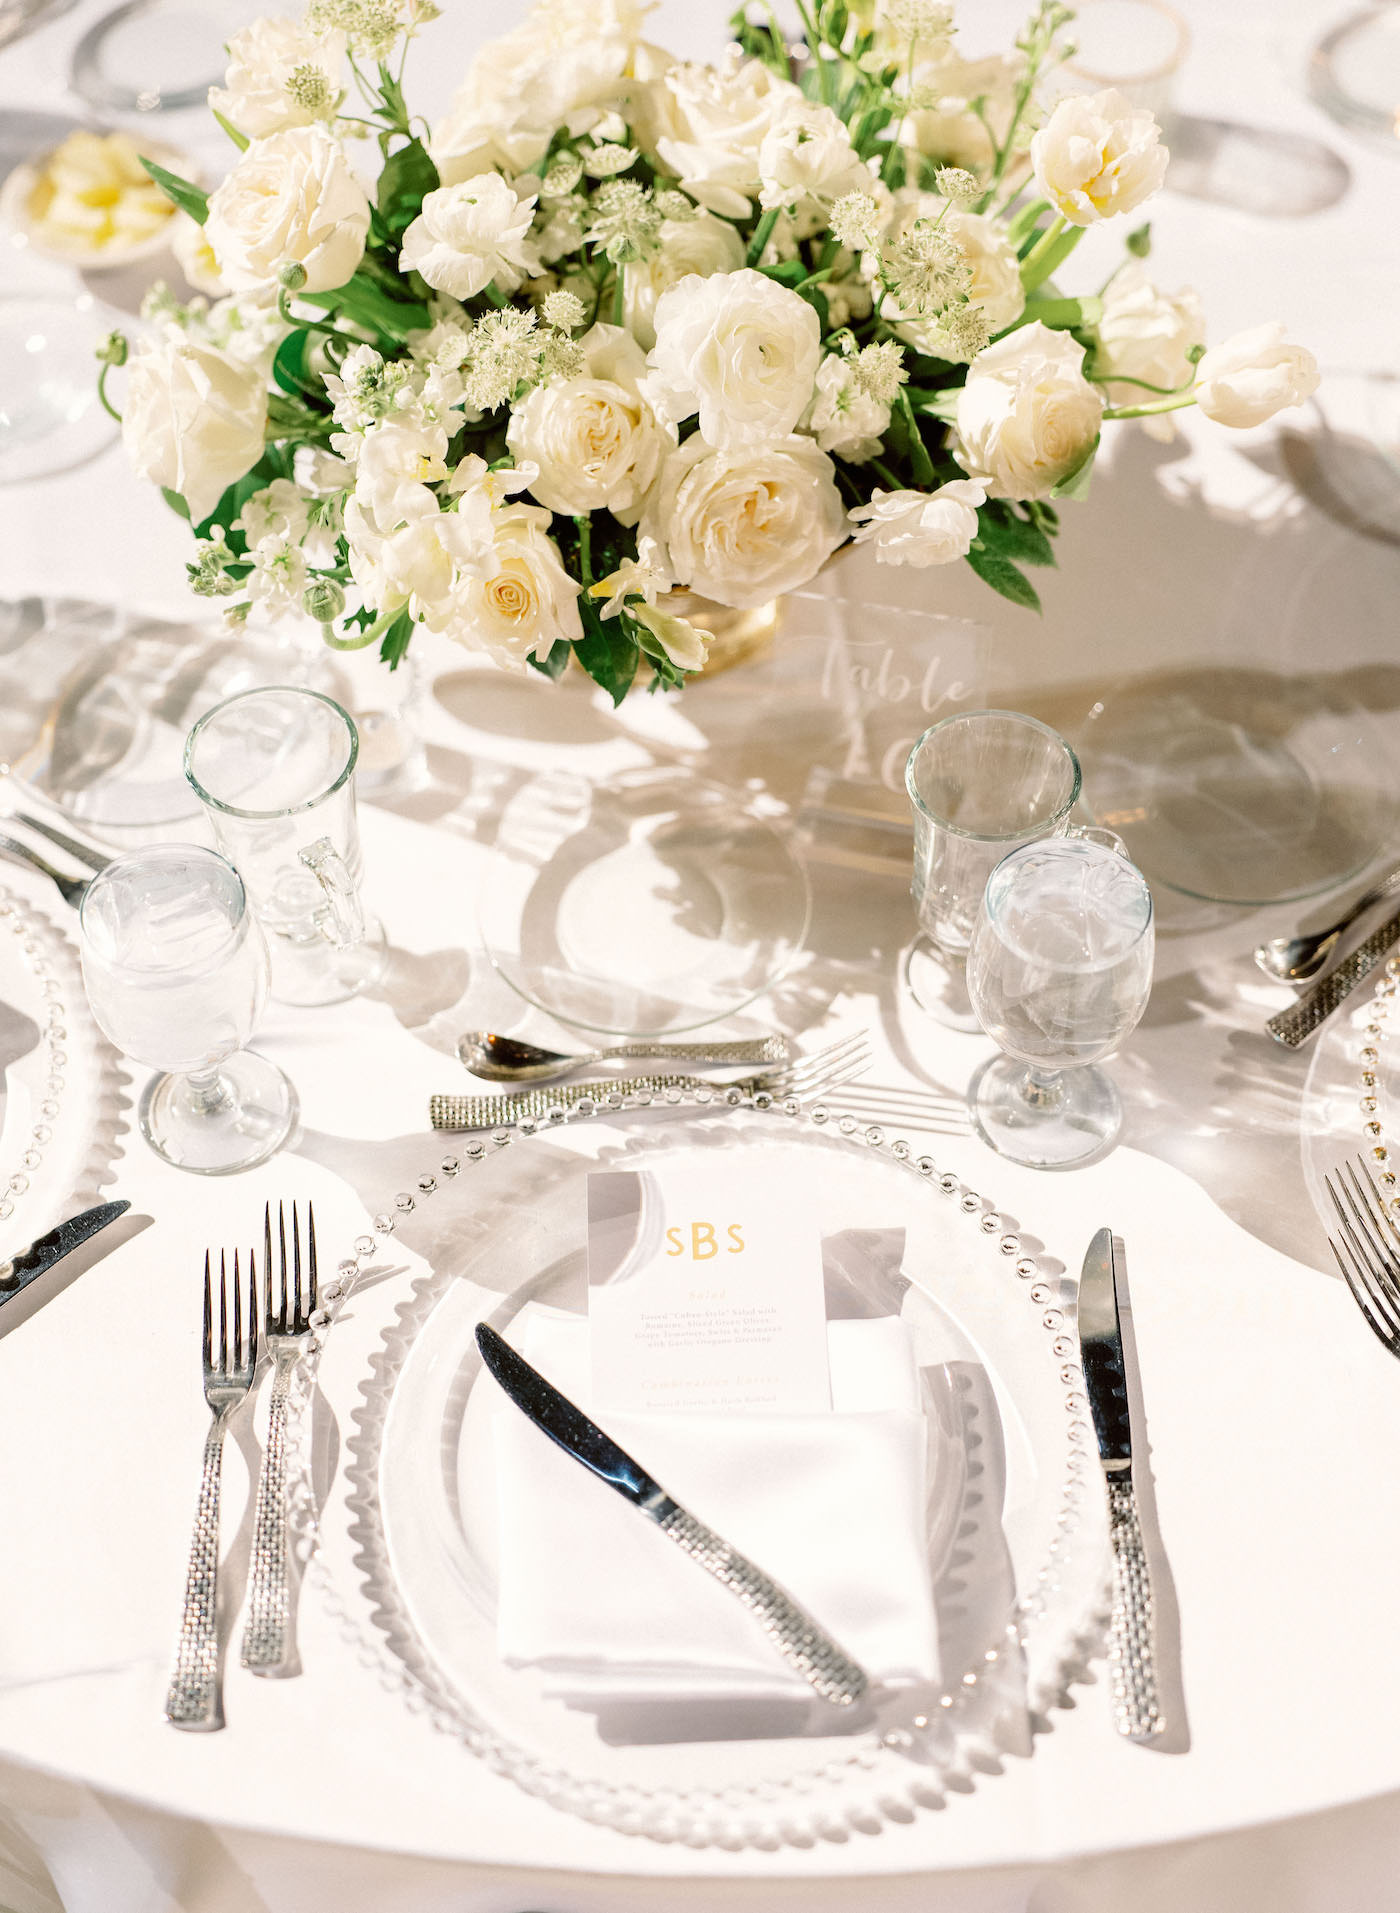 Romantic, Modern Outdoor Florida Wedding Reception Decor, White Linens and Clear Acrylic Stemware and Chargers, Custom Menu, Low Floral Centerpieces with Ivory Roses, White Babies Breath and Greenery | Luxury Sarasota Wedding Planner NK Weddings